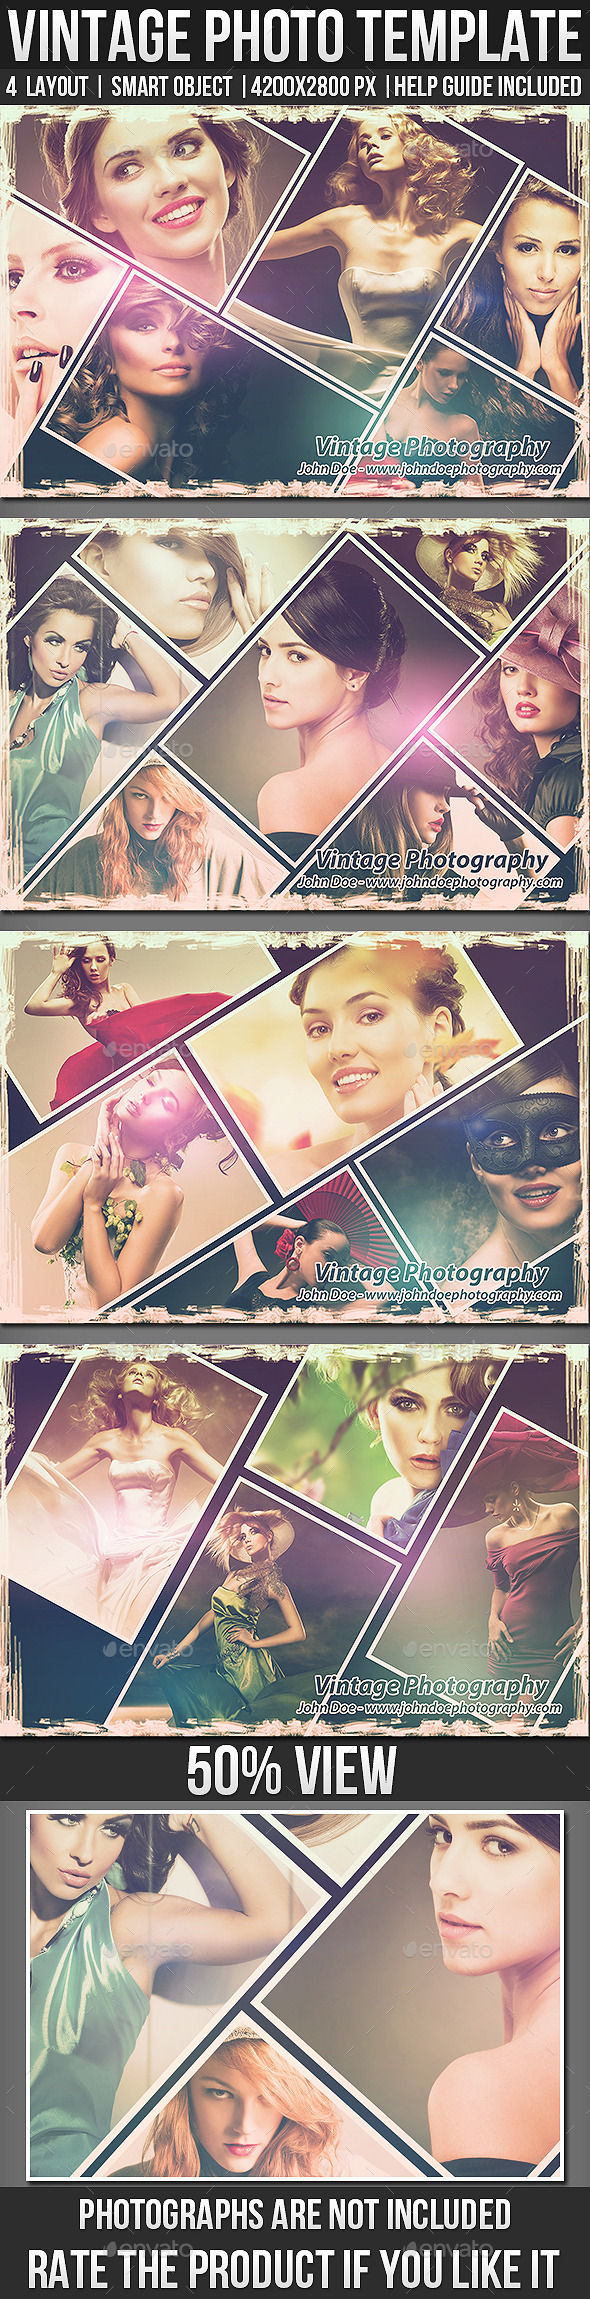 Vintage Photo Templates - Photo Templates Graphics